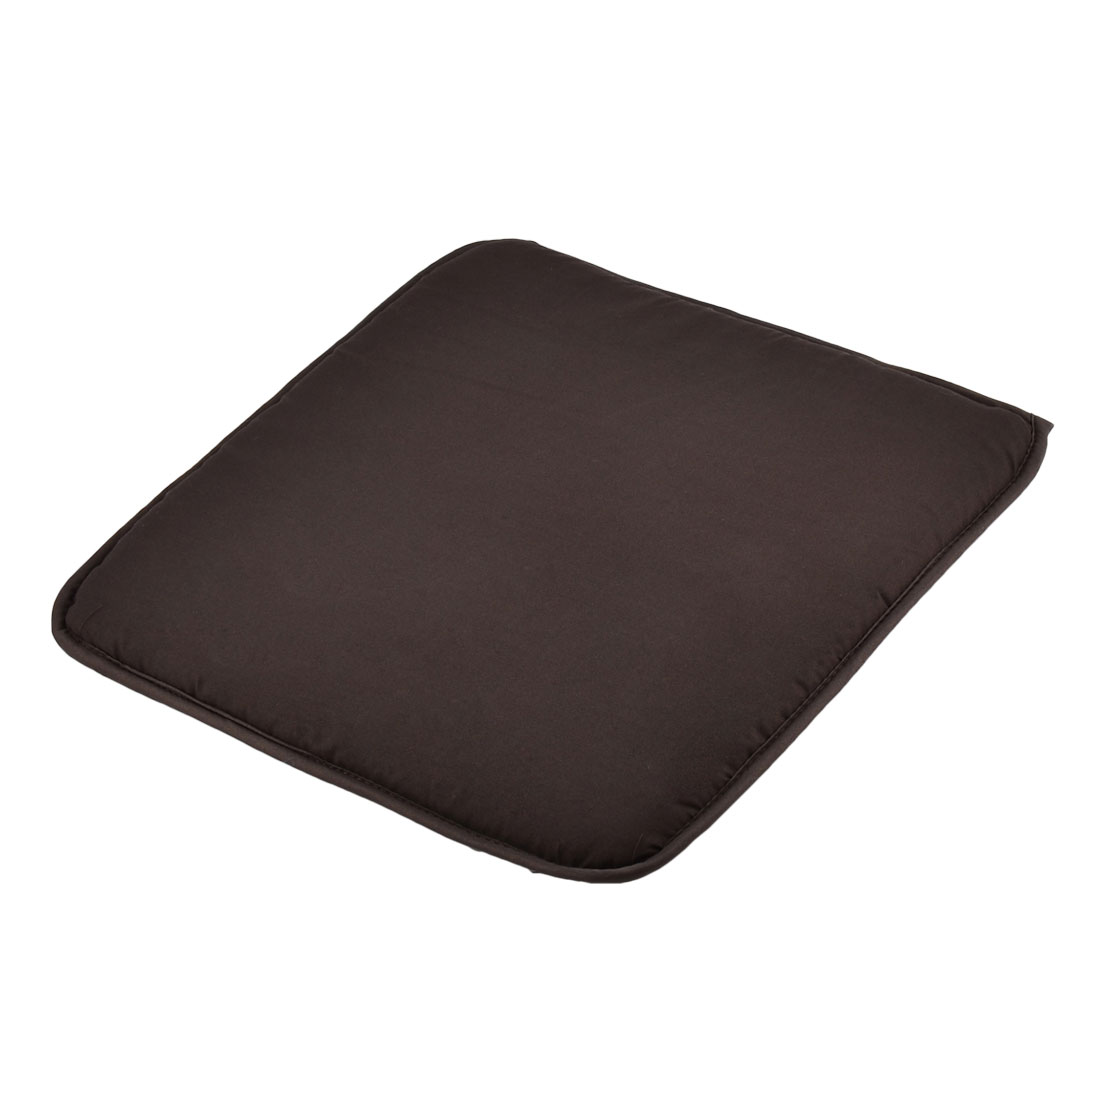 Home Office Sponge Solid Anti Slip Seat Chair Cushion Pad Cover Coffee Color 39 x 39cm